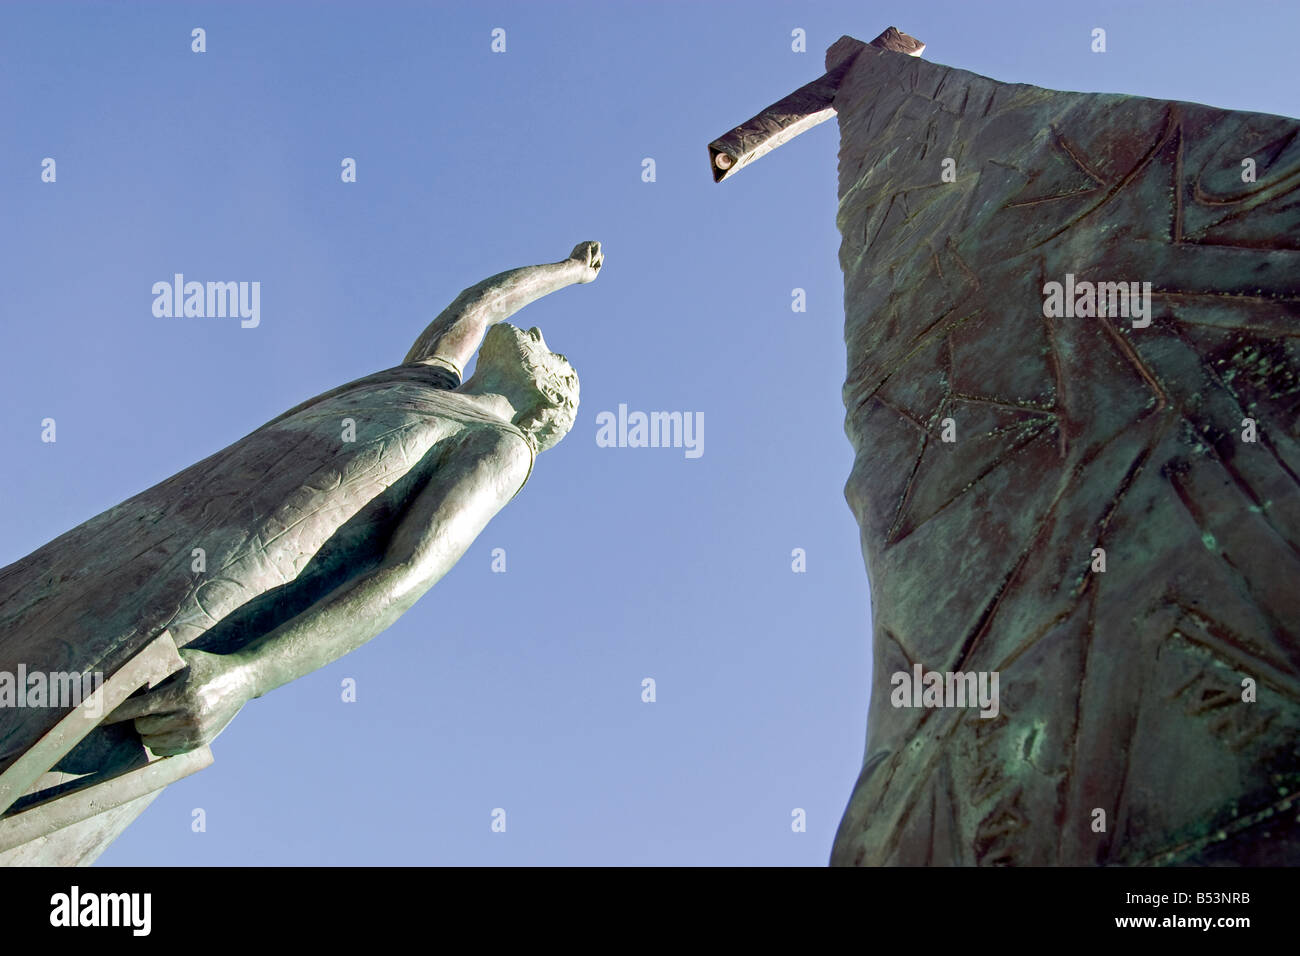 pythagorean stock photos pythagorean stock images  pythagoras statue samos stock image